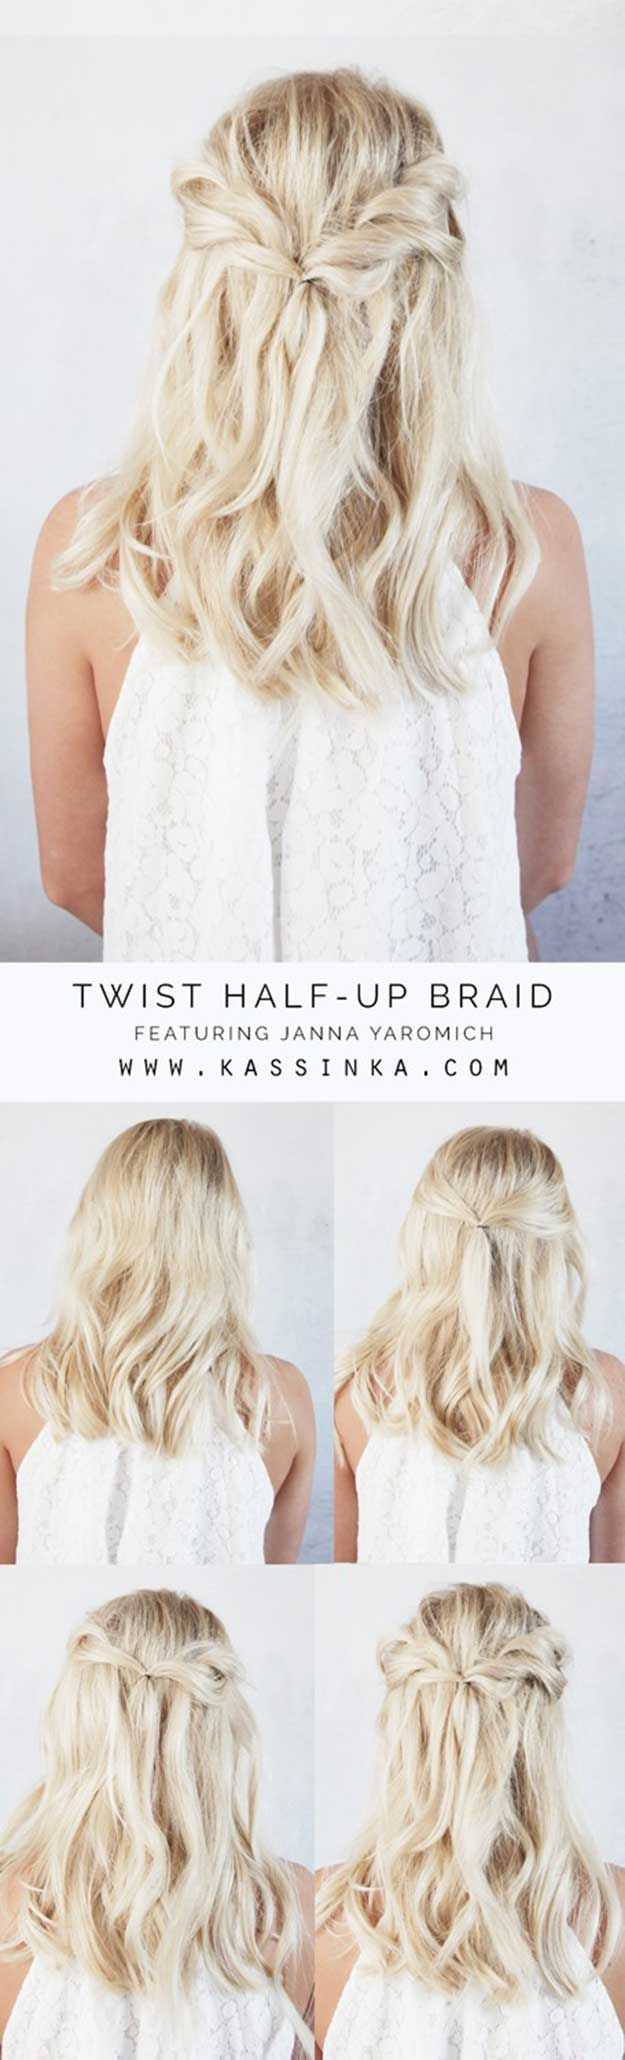 39 Best Summer Hairstyles | Bridesmaid hair tutorial, Easy summer ...